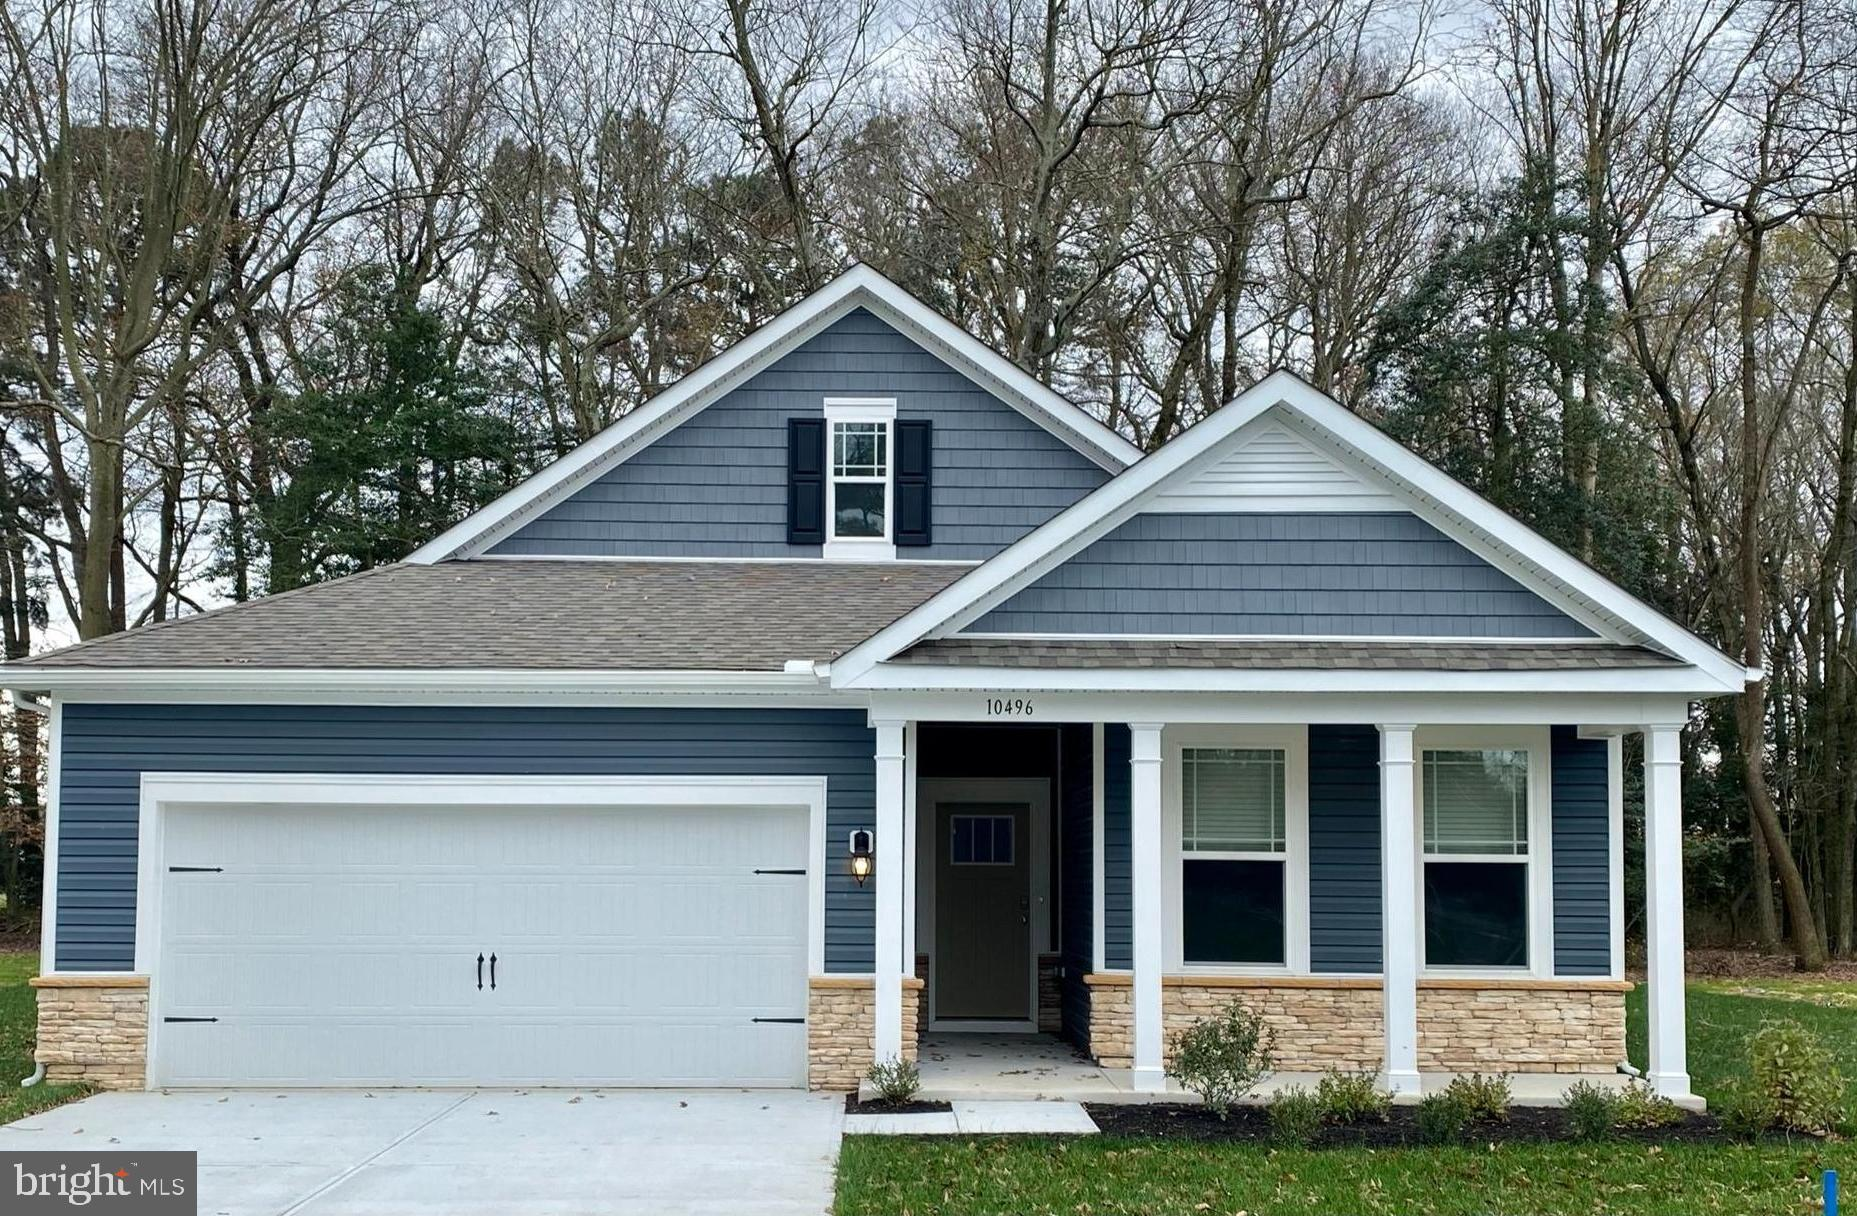 Available 1,748 square foot, open concept, new construction ranch home in Ocean View. Complete with